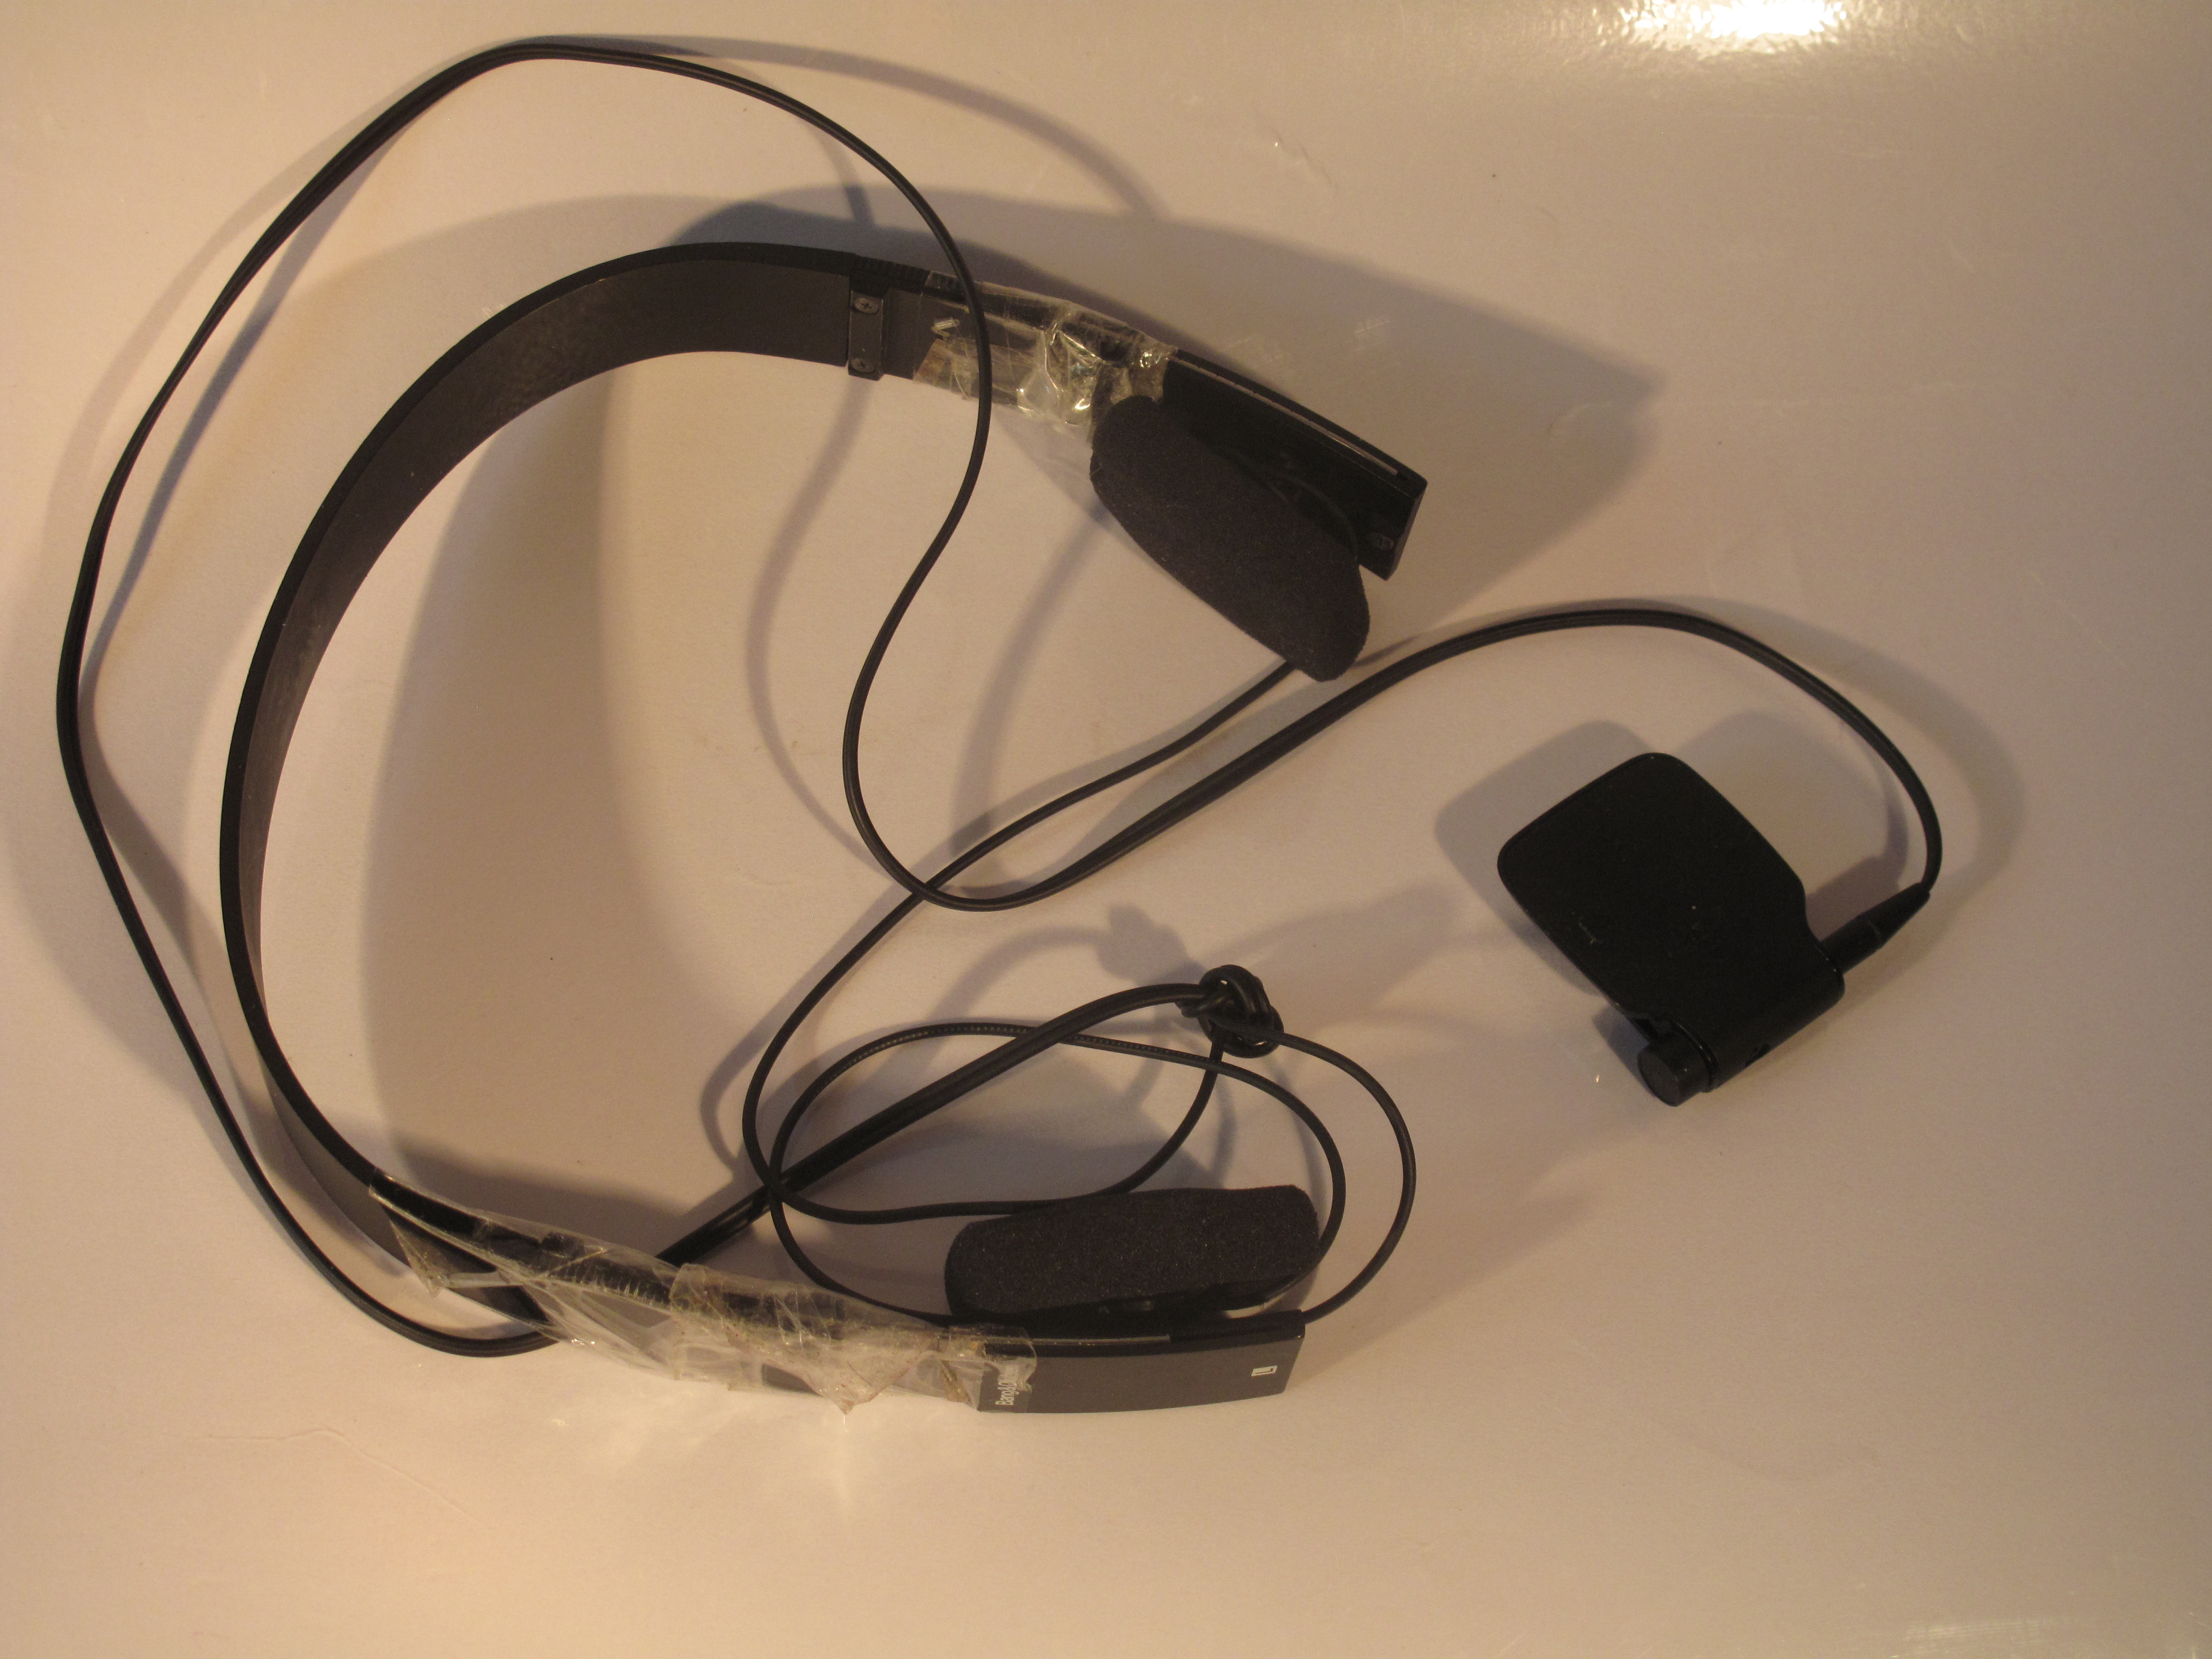 Nokia BH-111 headphone adaptor connected to headphones